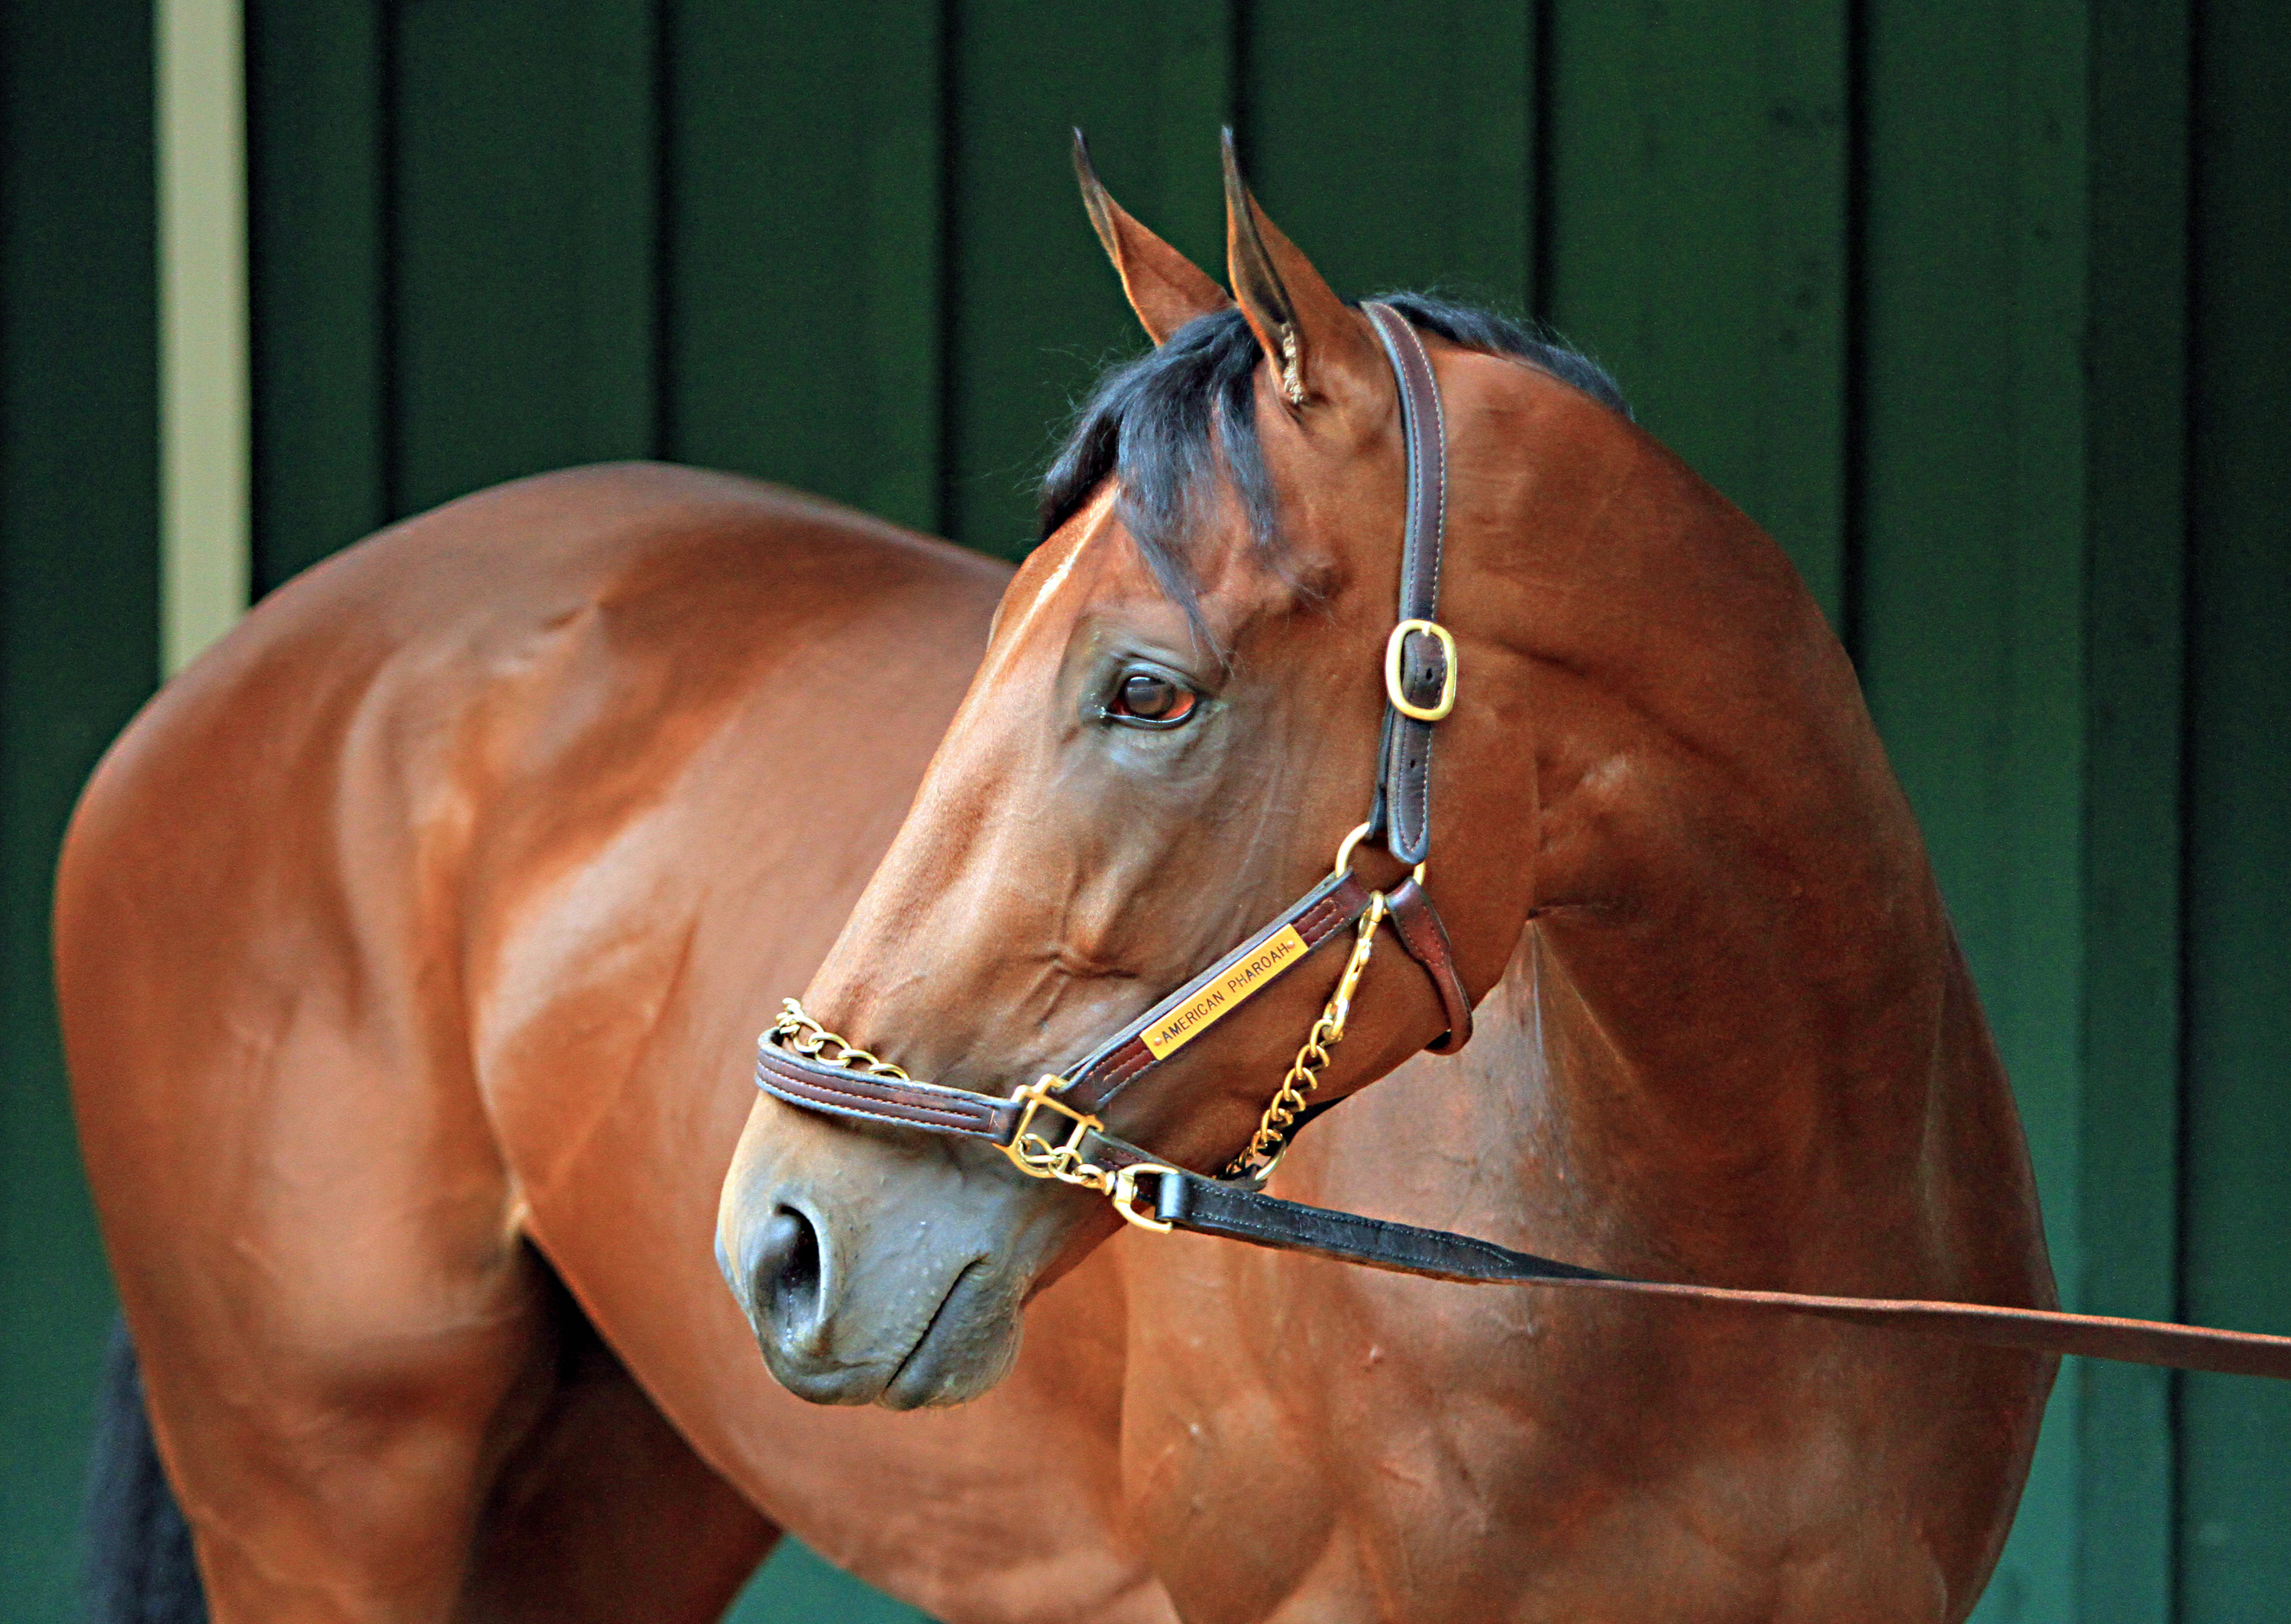 Preakness Stakes winner American Pharoah stops his morning walk to check out the crowd around the stakes barn, Sunday, May 17, 2015 at Pimlico Race Course in Baltimore.  (AP Photo/Garry Jones)